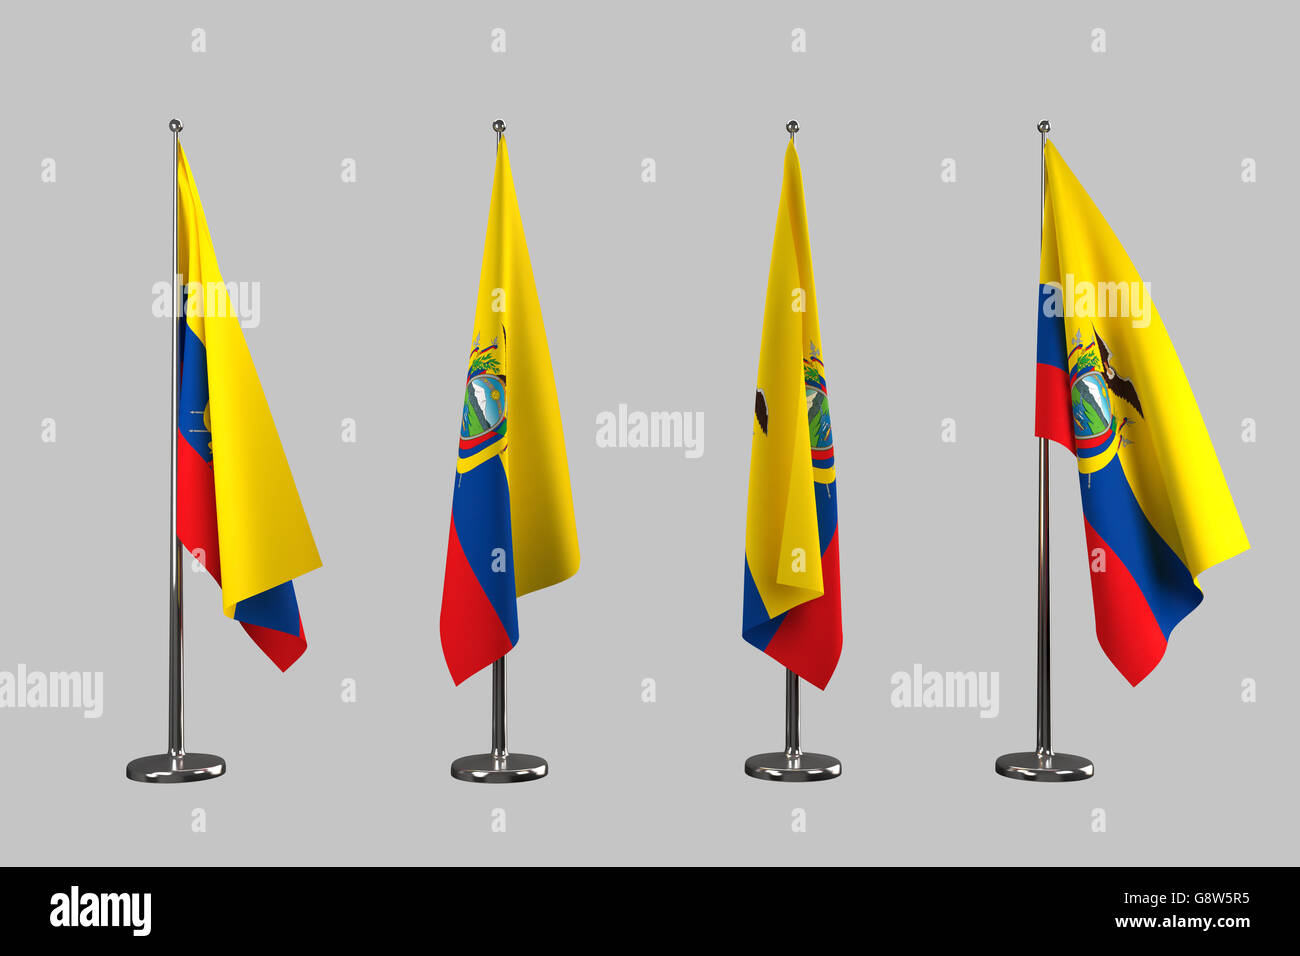 Ecuador indoor flags isolate on white background - Stock Image